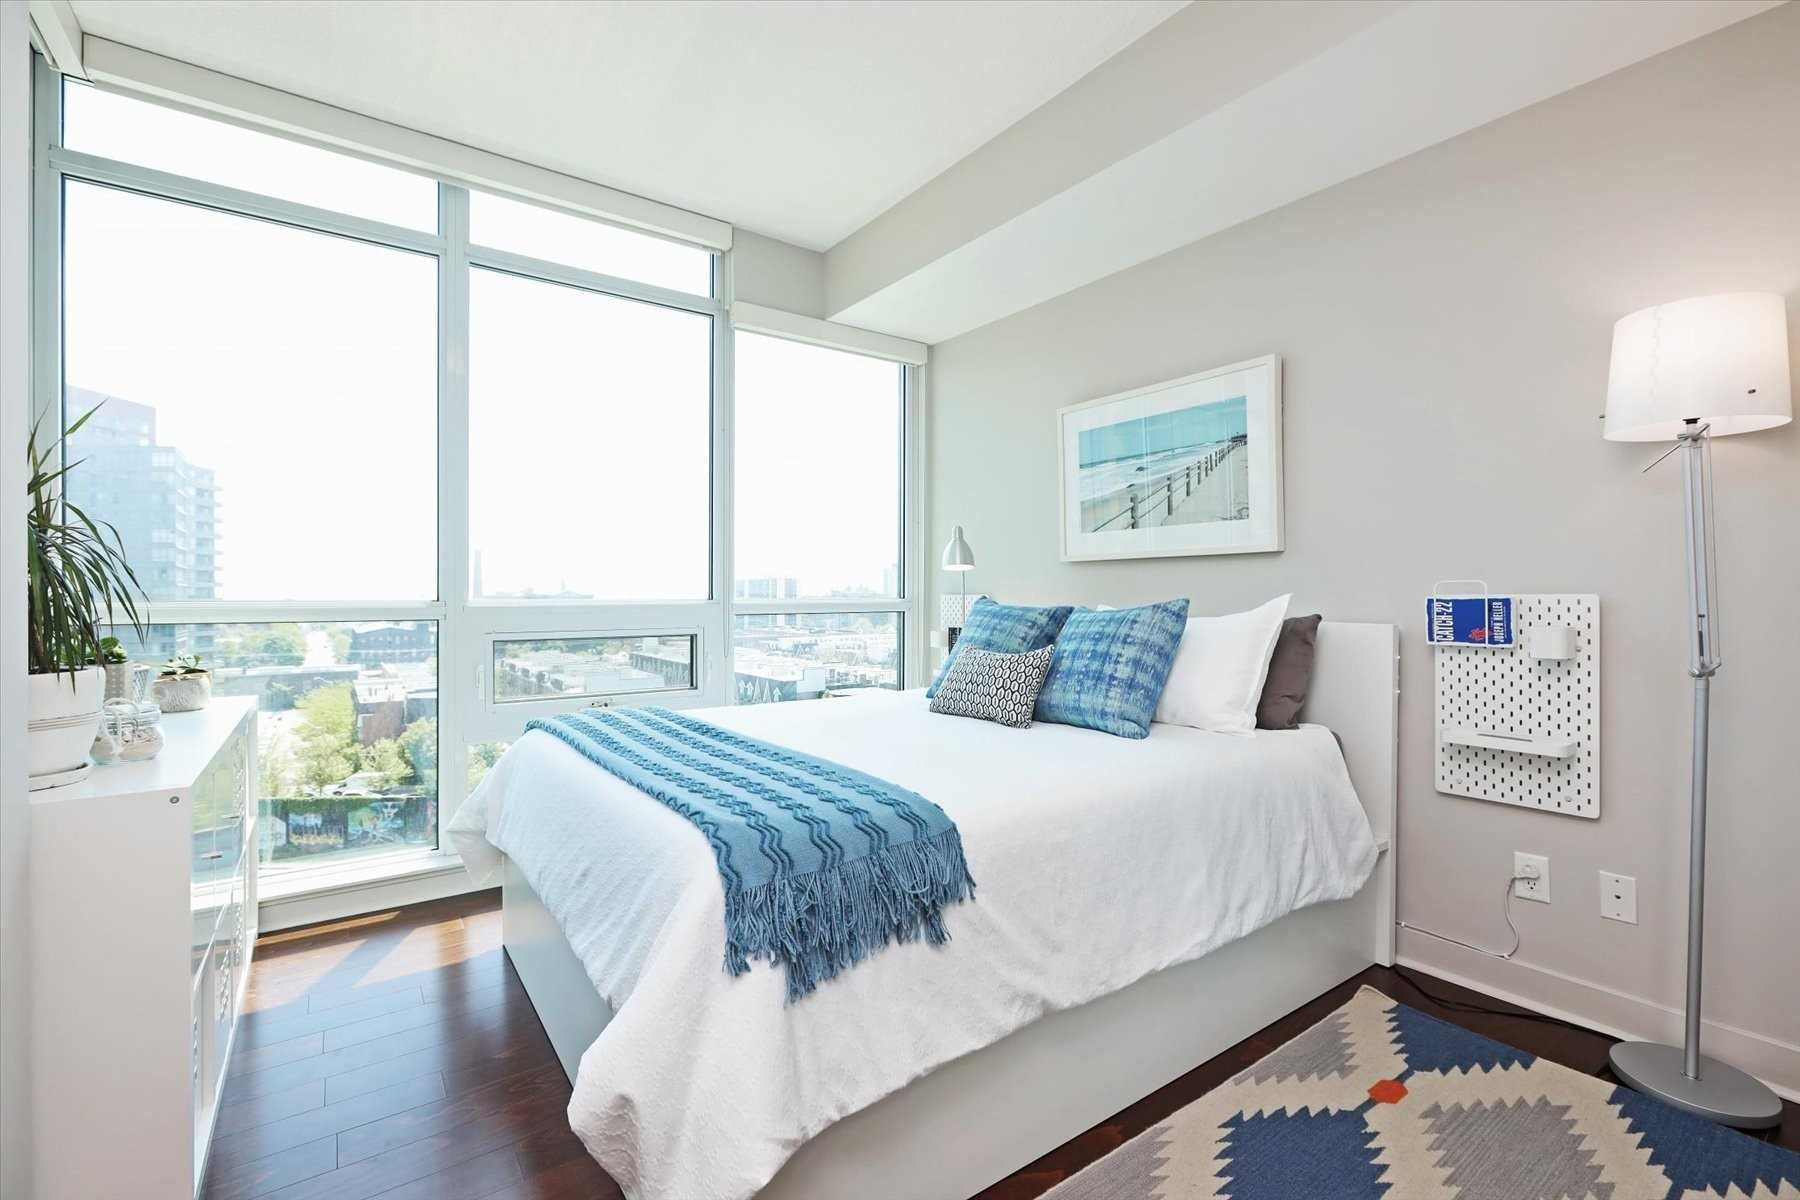 1171 Queen St W, unit 1009 for sale in Toronto - image #1